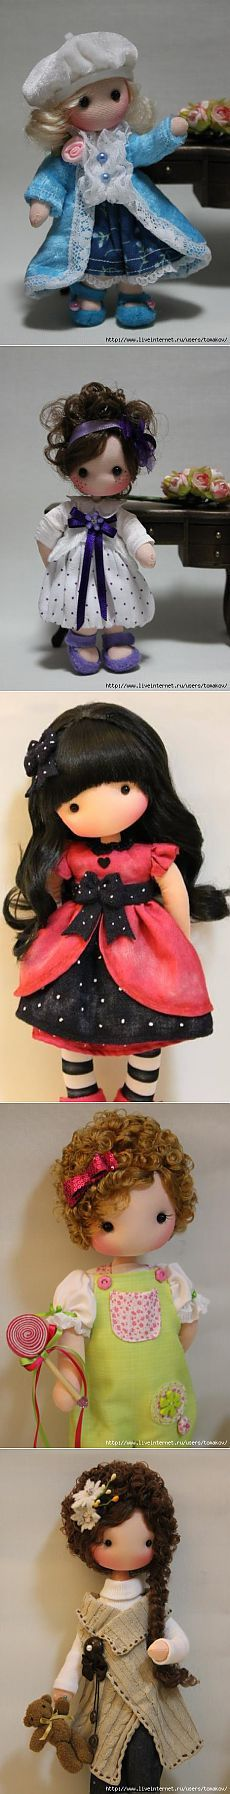 DOLLS FROM FIDELINA STORE + IC dolls BUTTERFLY